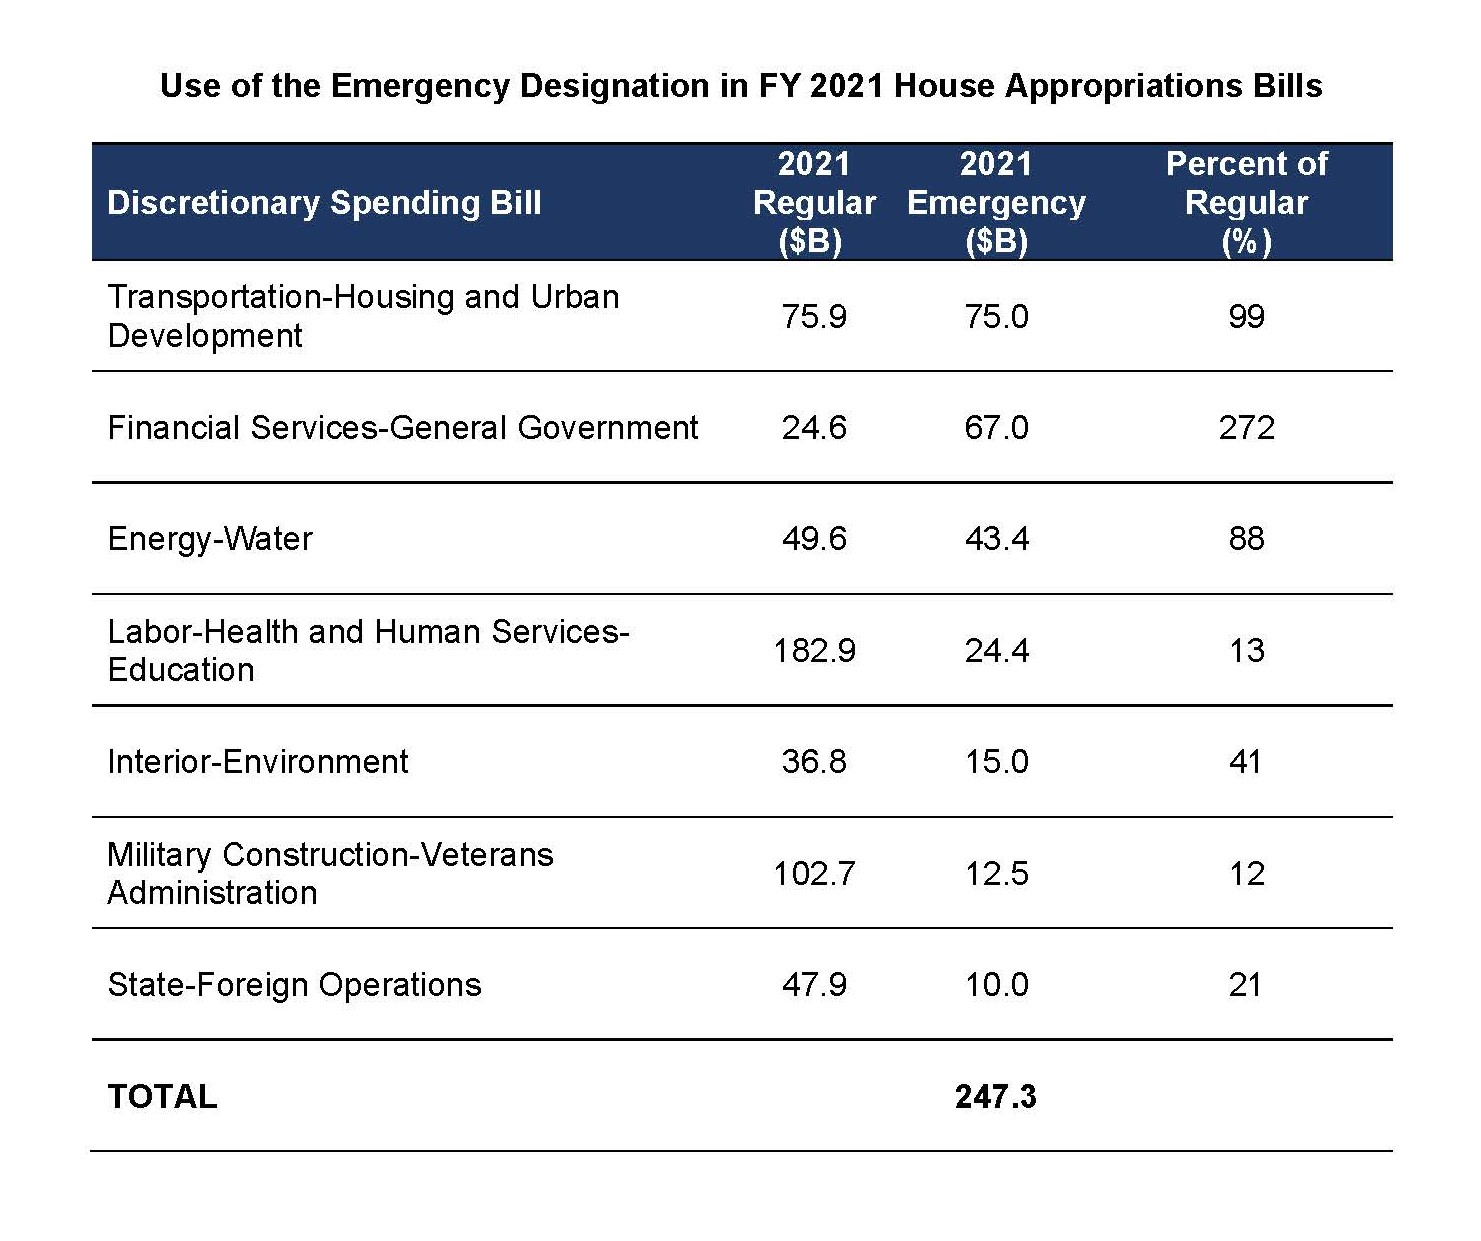 House Approps Emergency Deignation